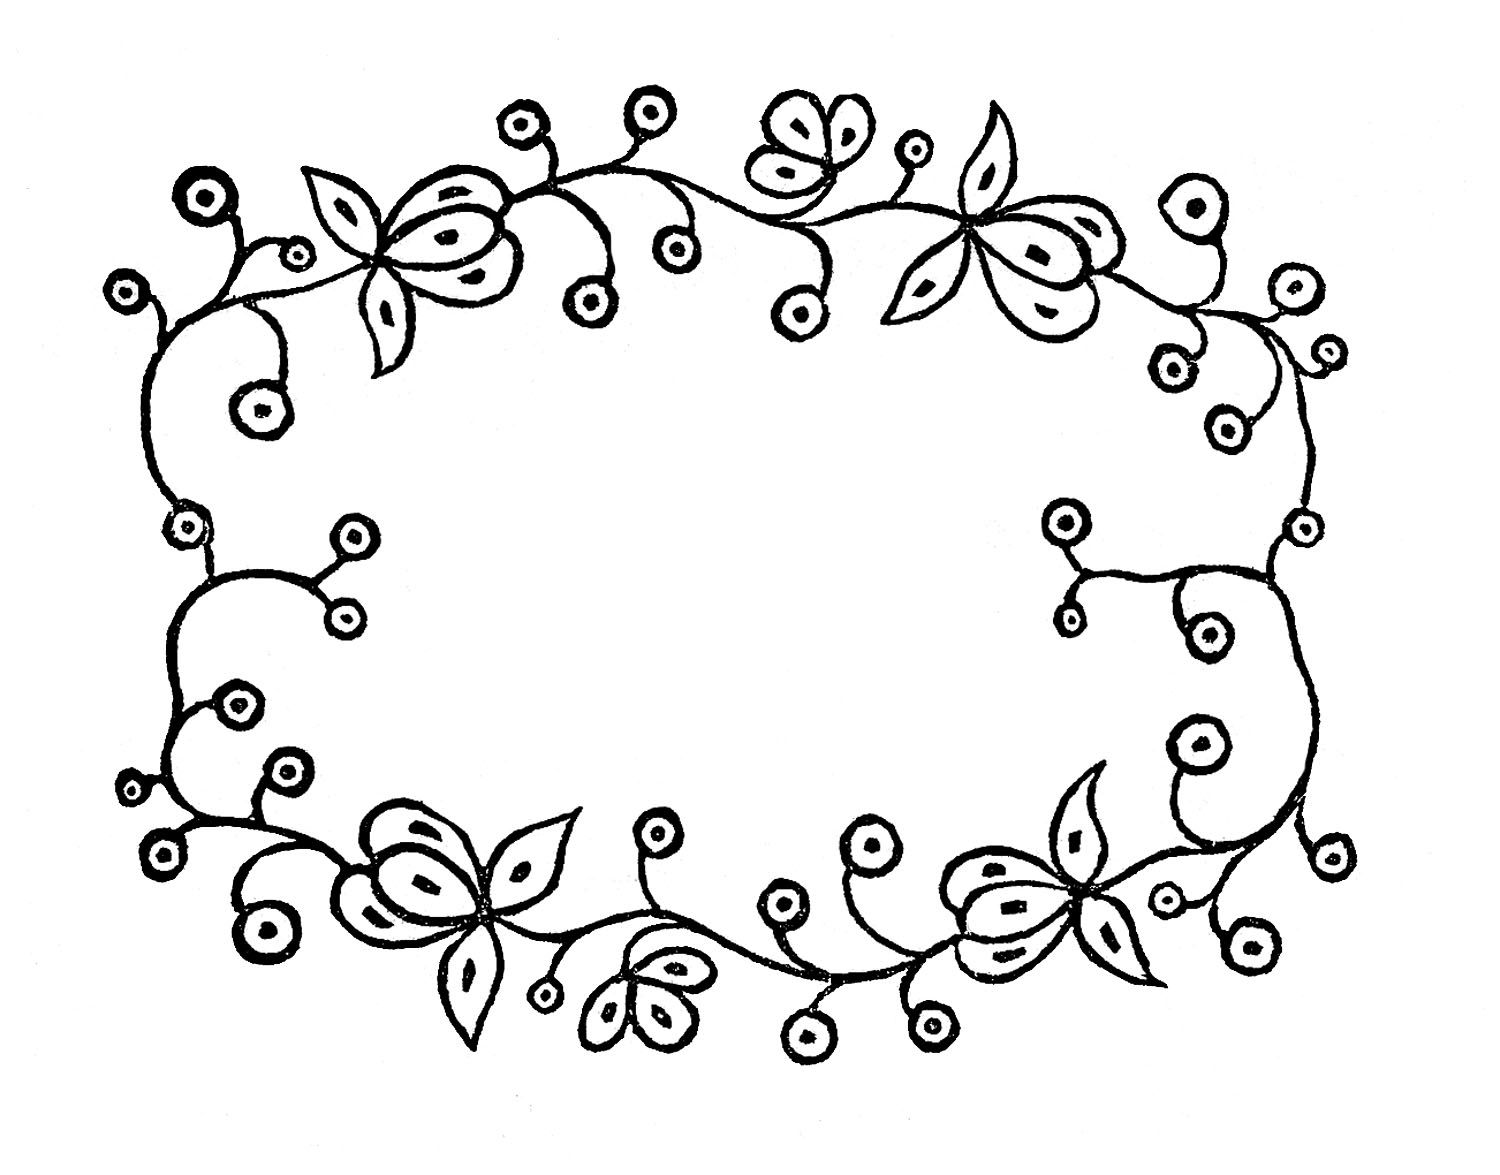 Royalty free images embroidery patterns floral frames royalty free images embroidery patterns floral frames bankloansurffo Gallery